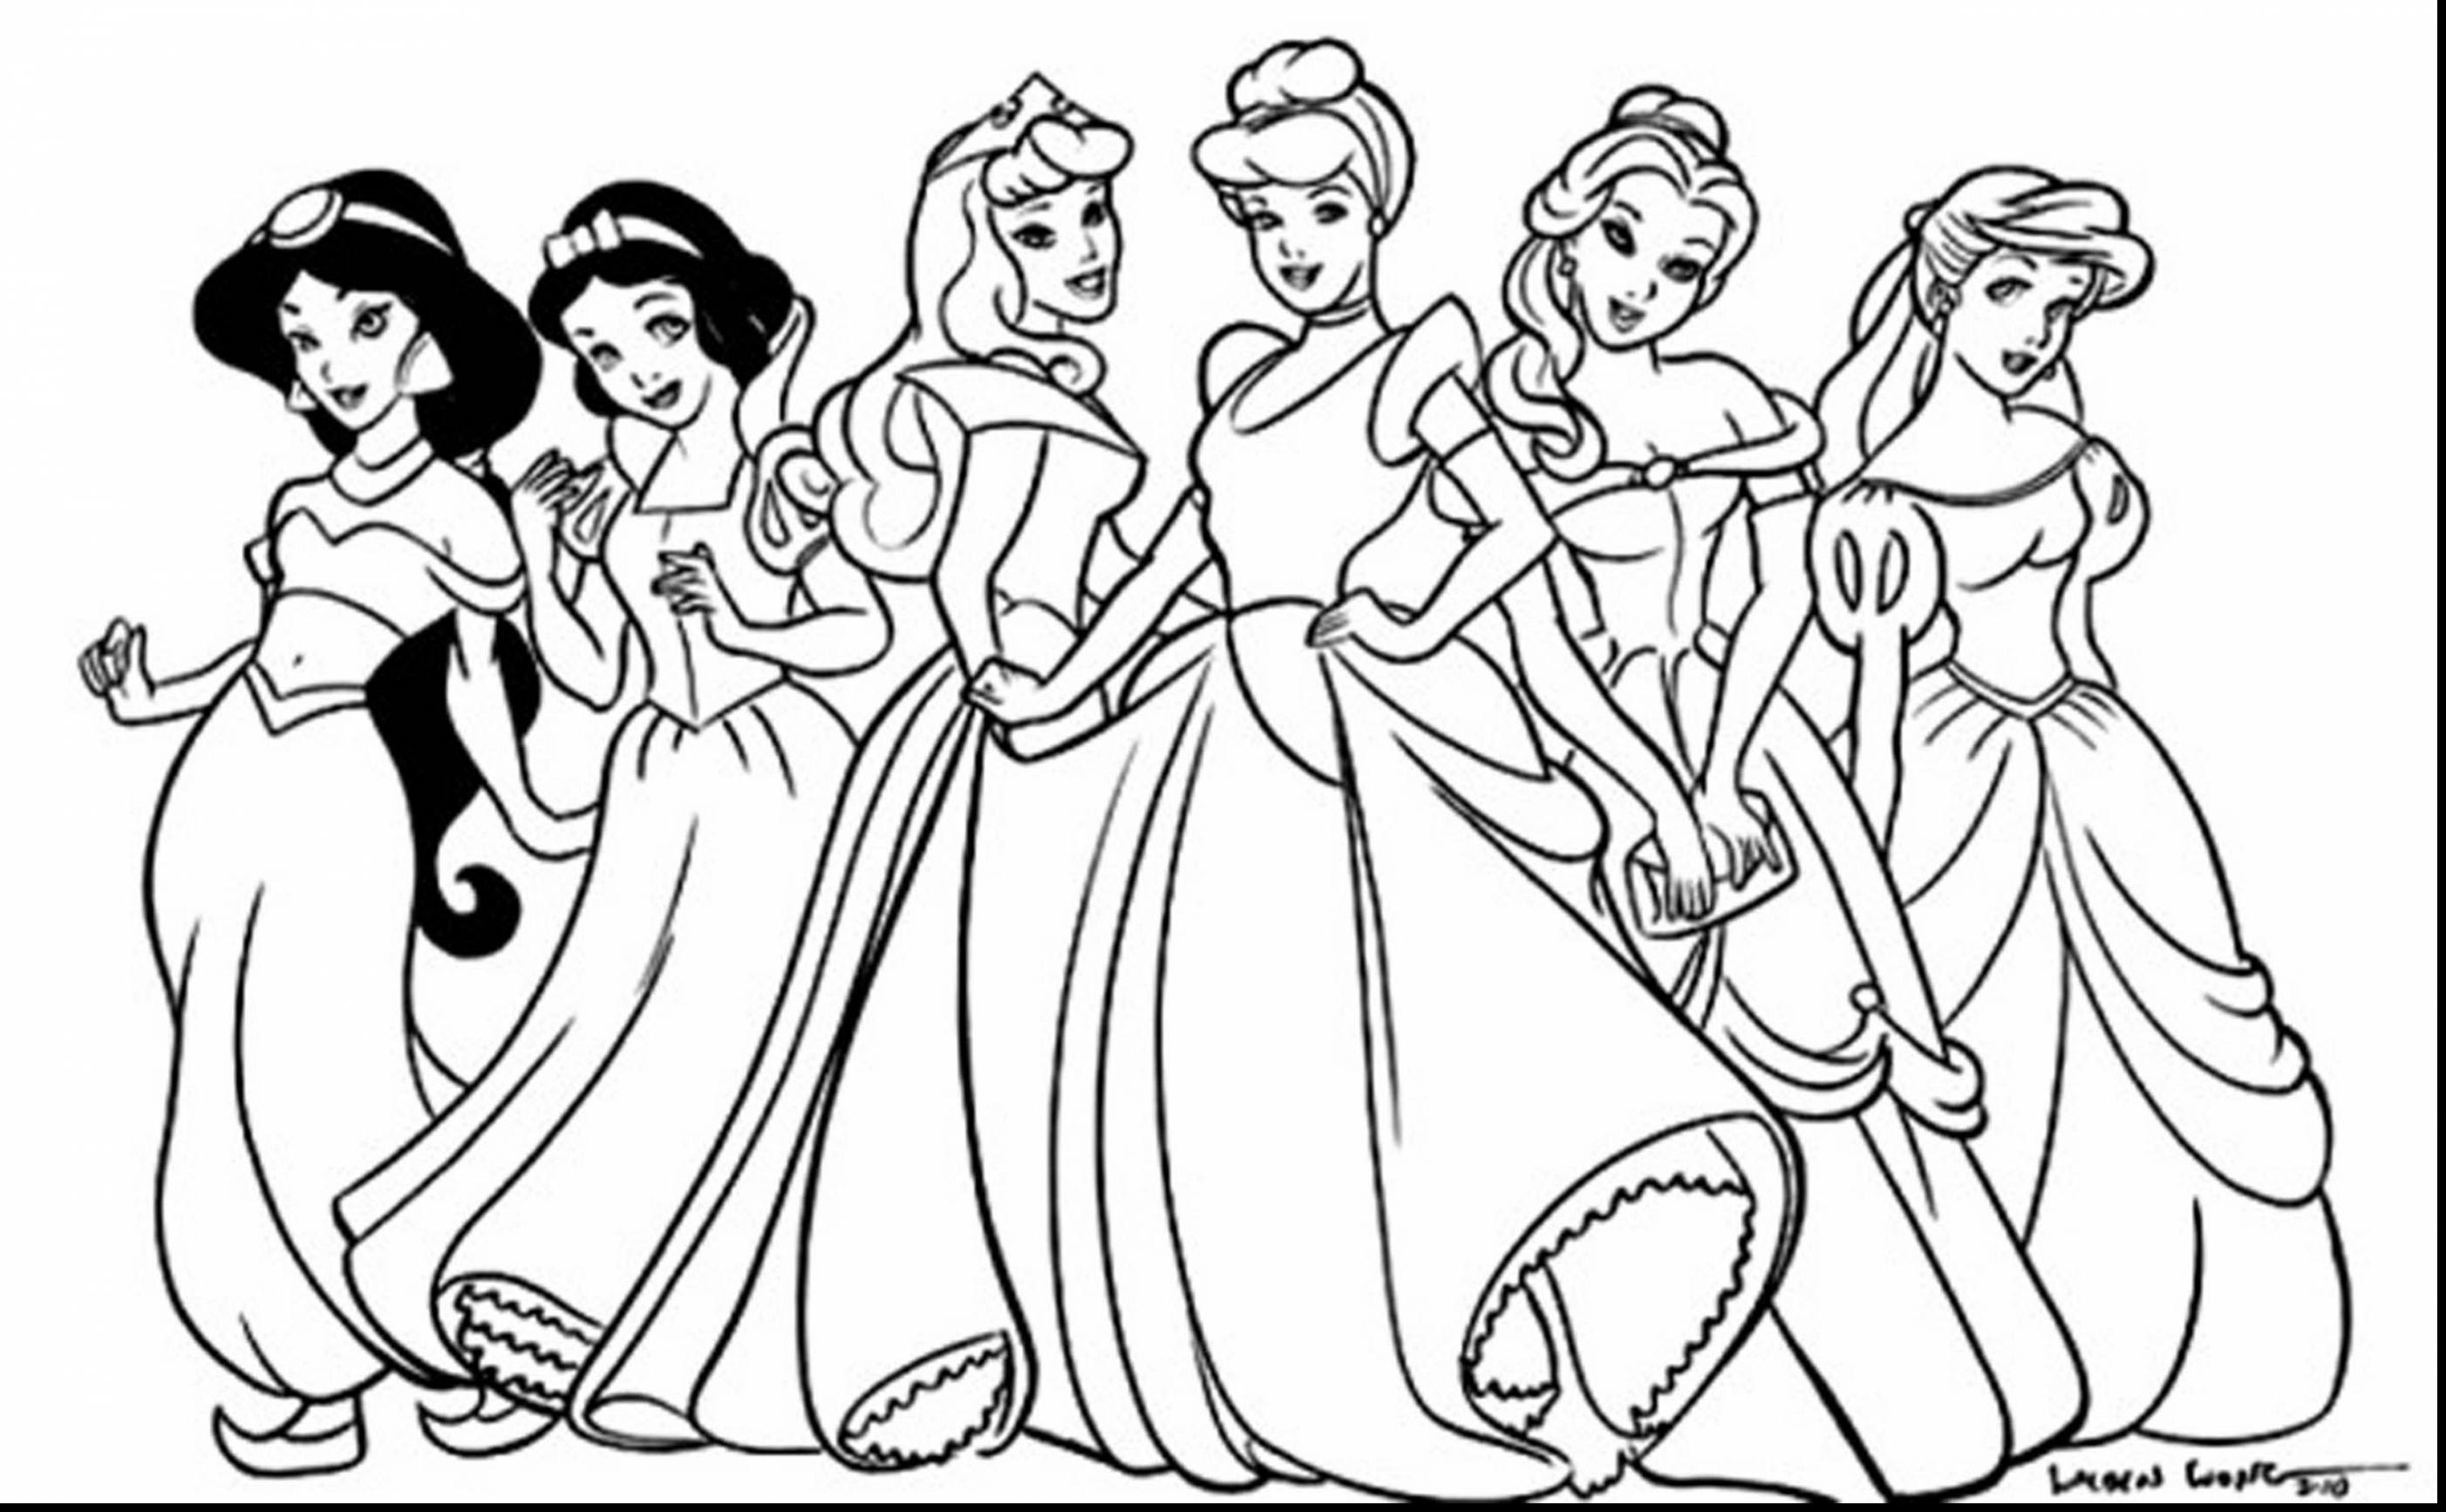 Disney Princesses Coloring Pages - Jasmine Snow White Cinderella ... | 1734x2805